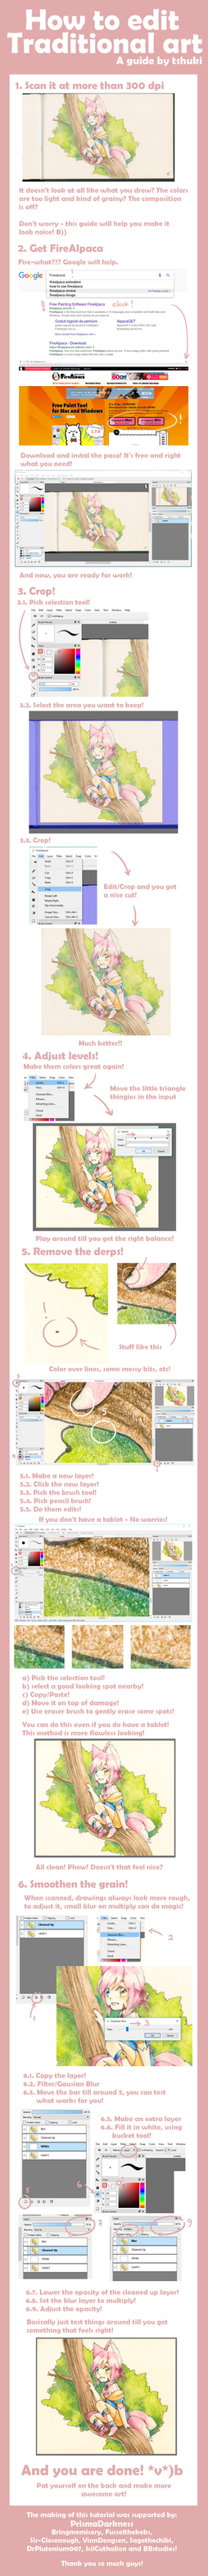 [Tutorial] How to edit traditional art! by tshuki